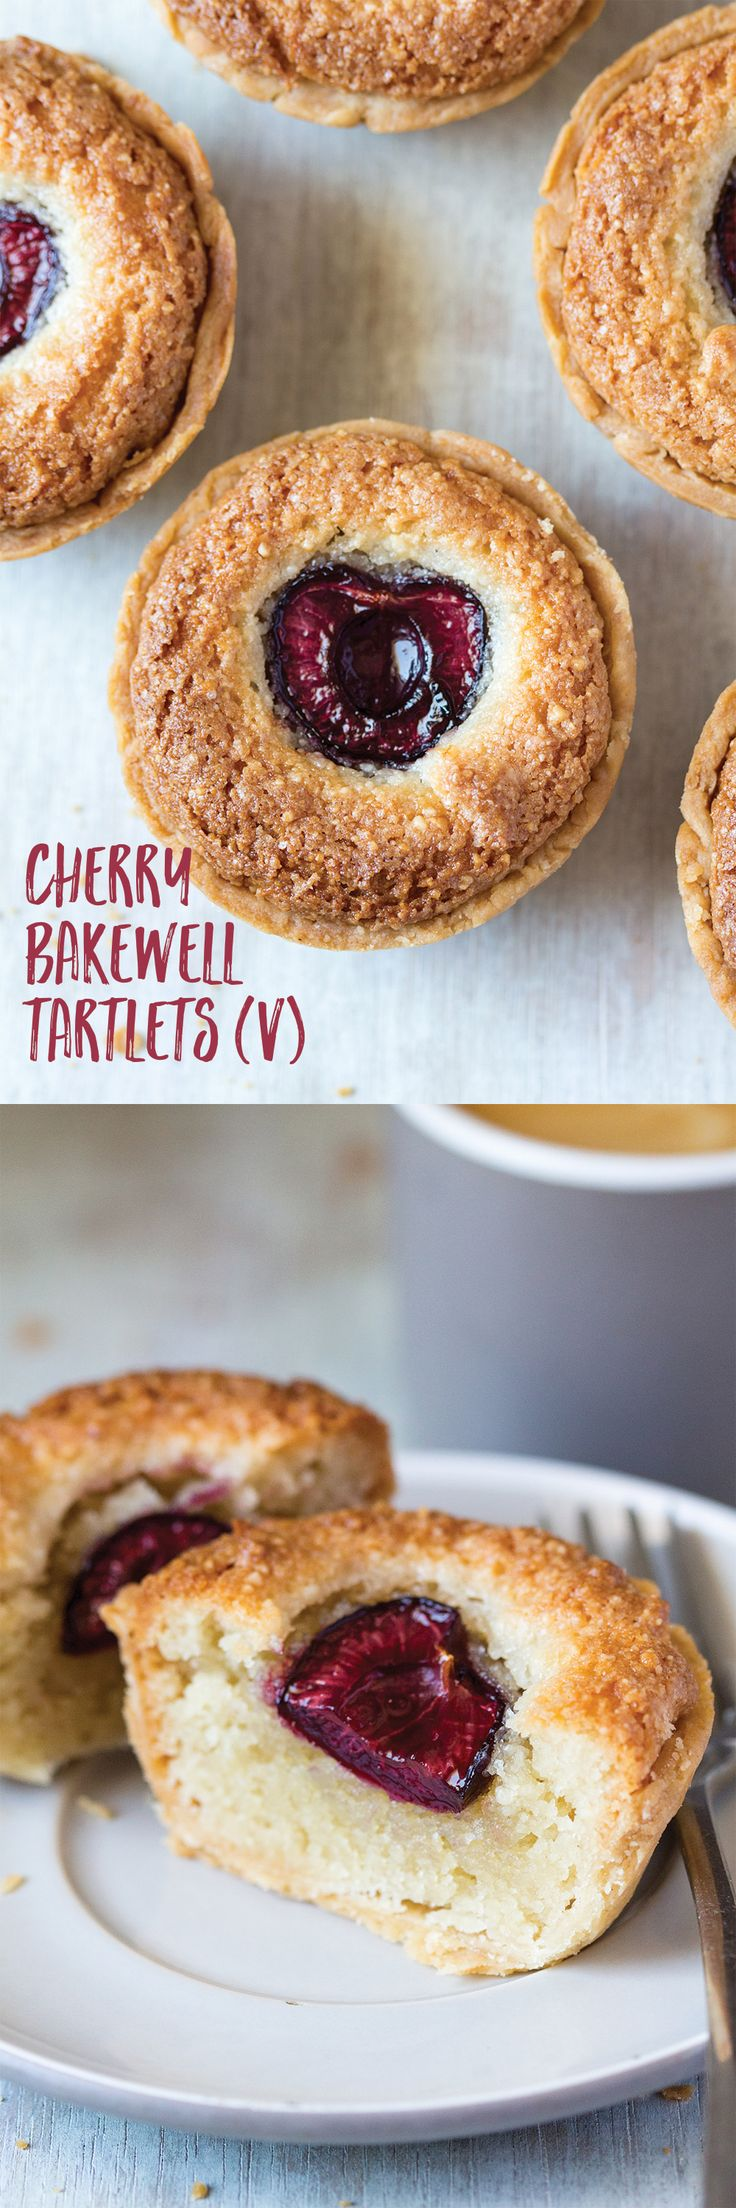 This vegan take on the UK classic, cherry bakewell mini tarts, is so simple and delicious!